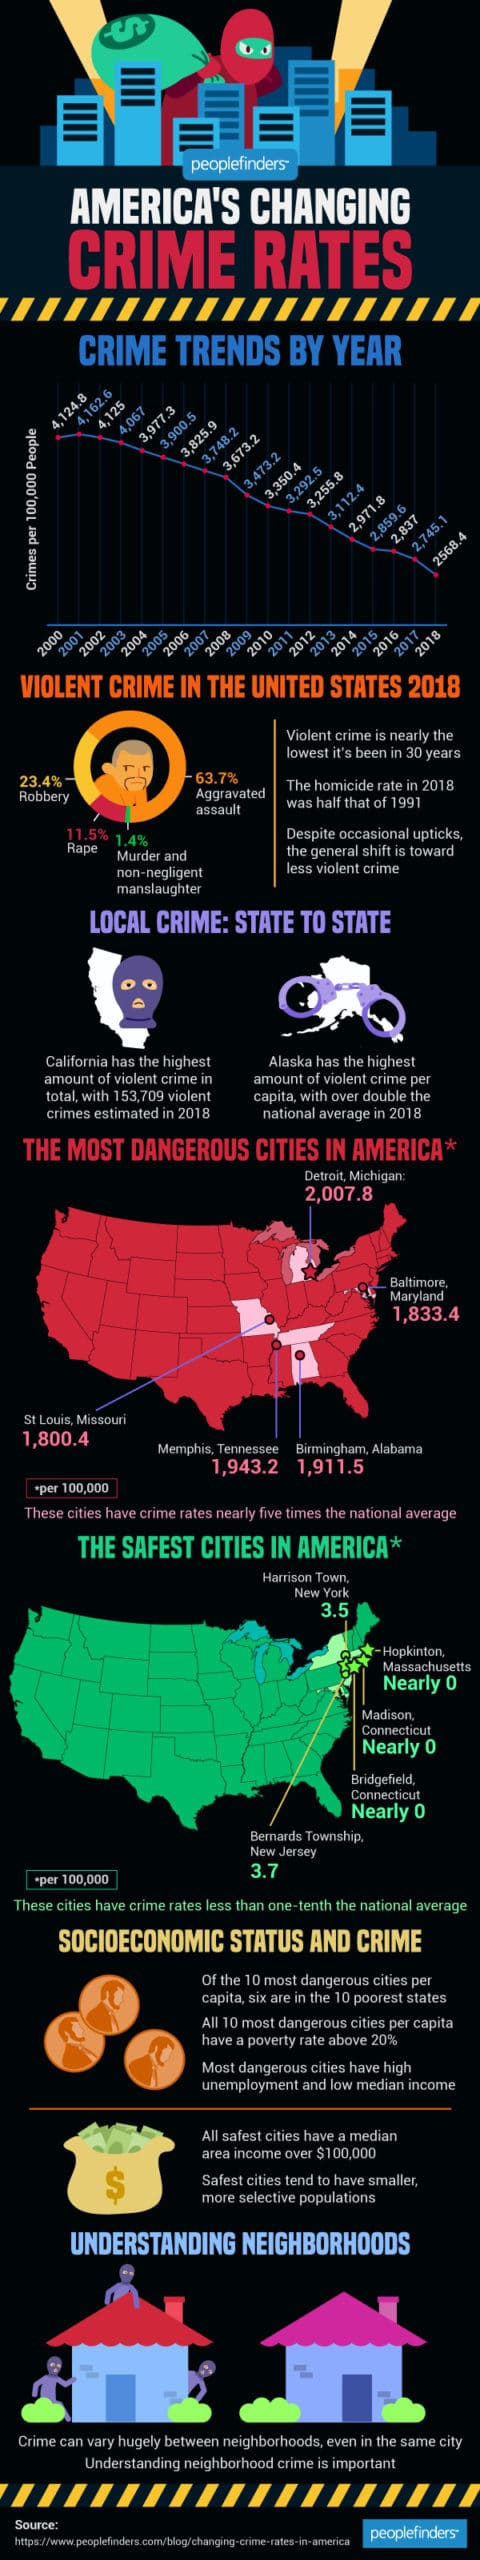 America's Changing Crime Rates